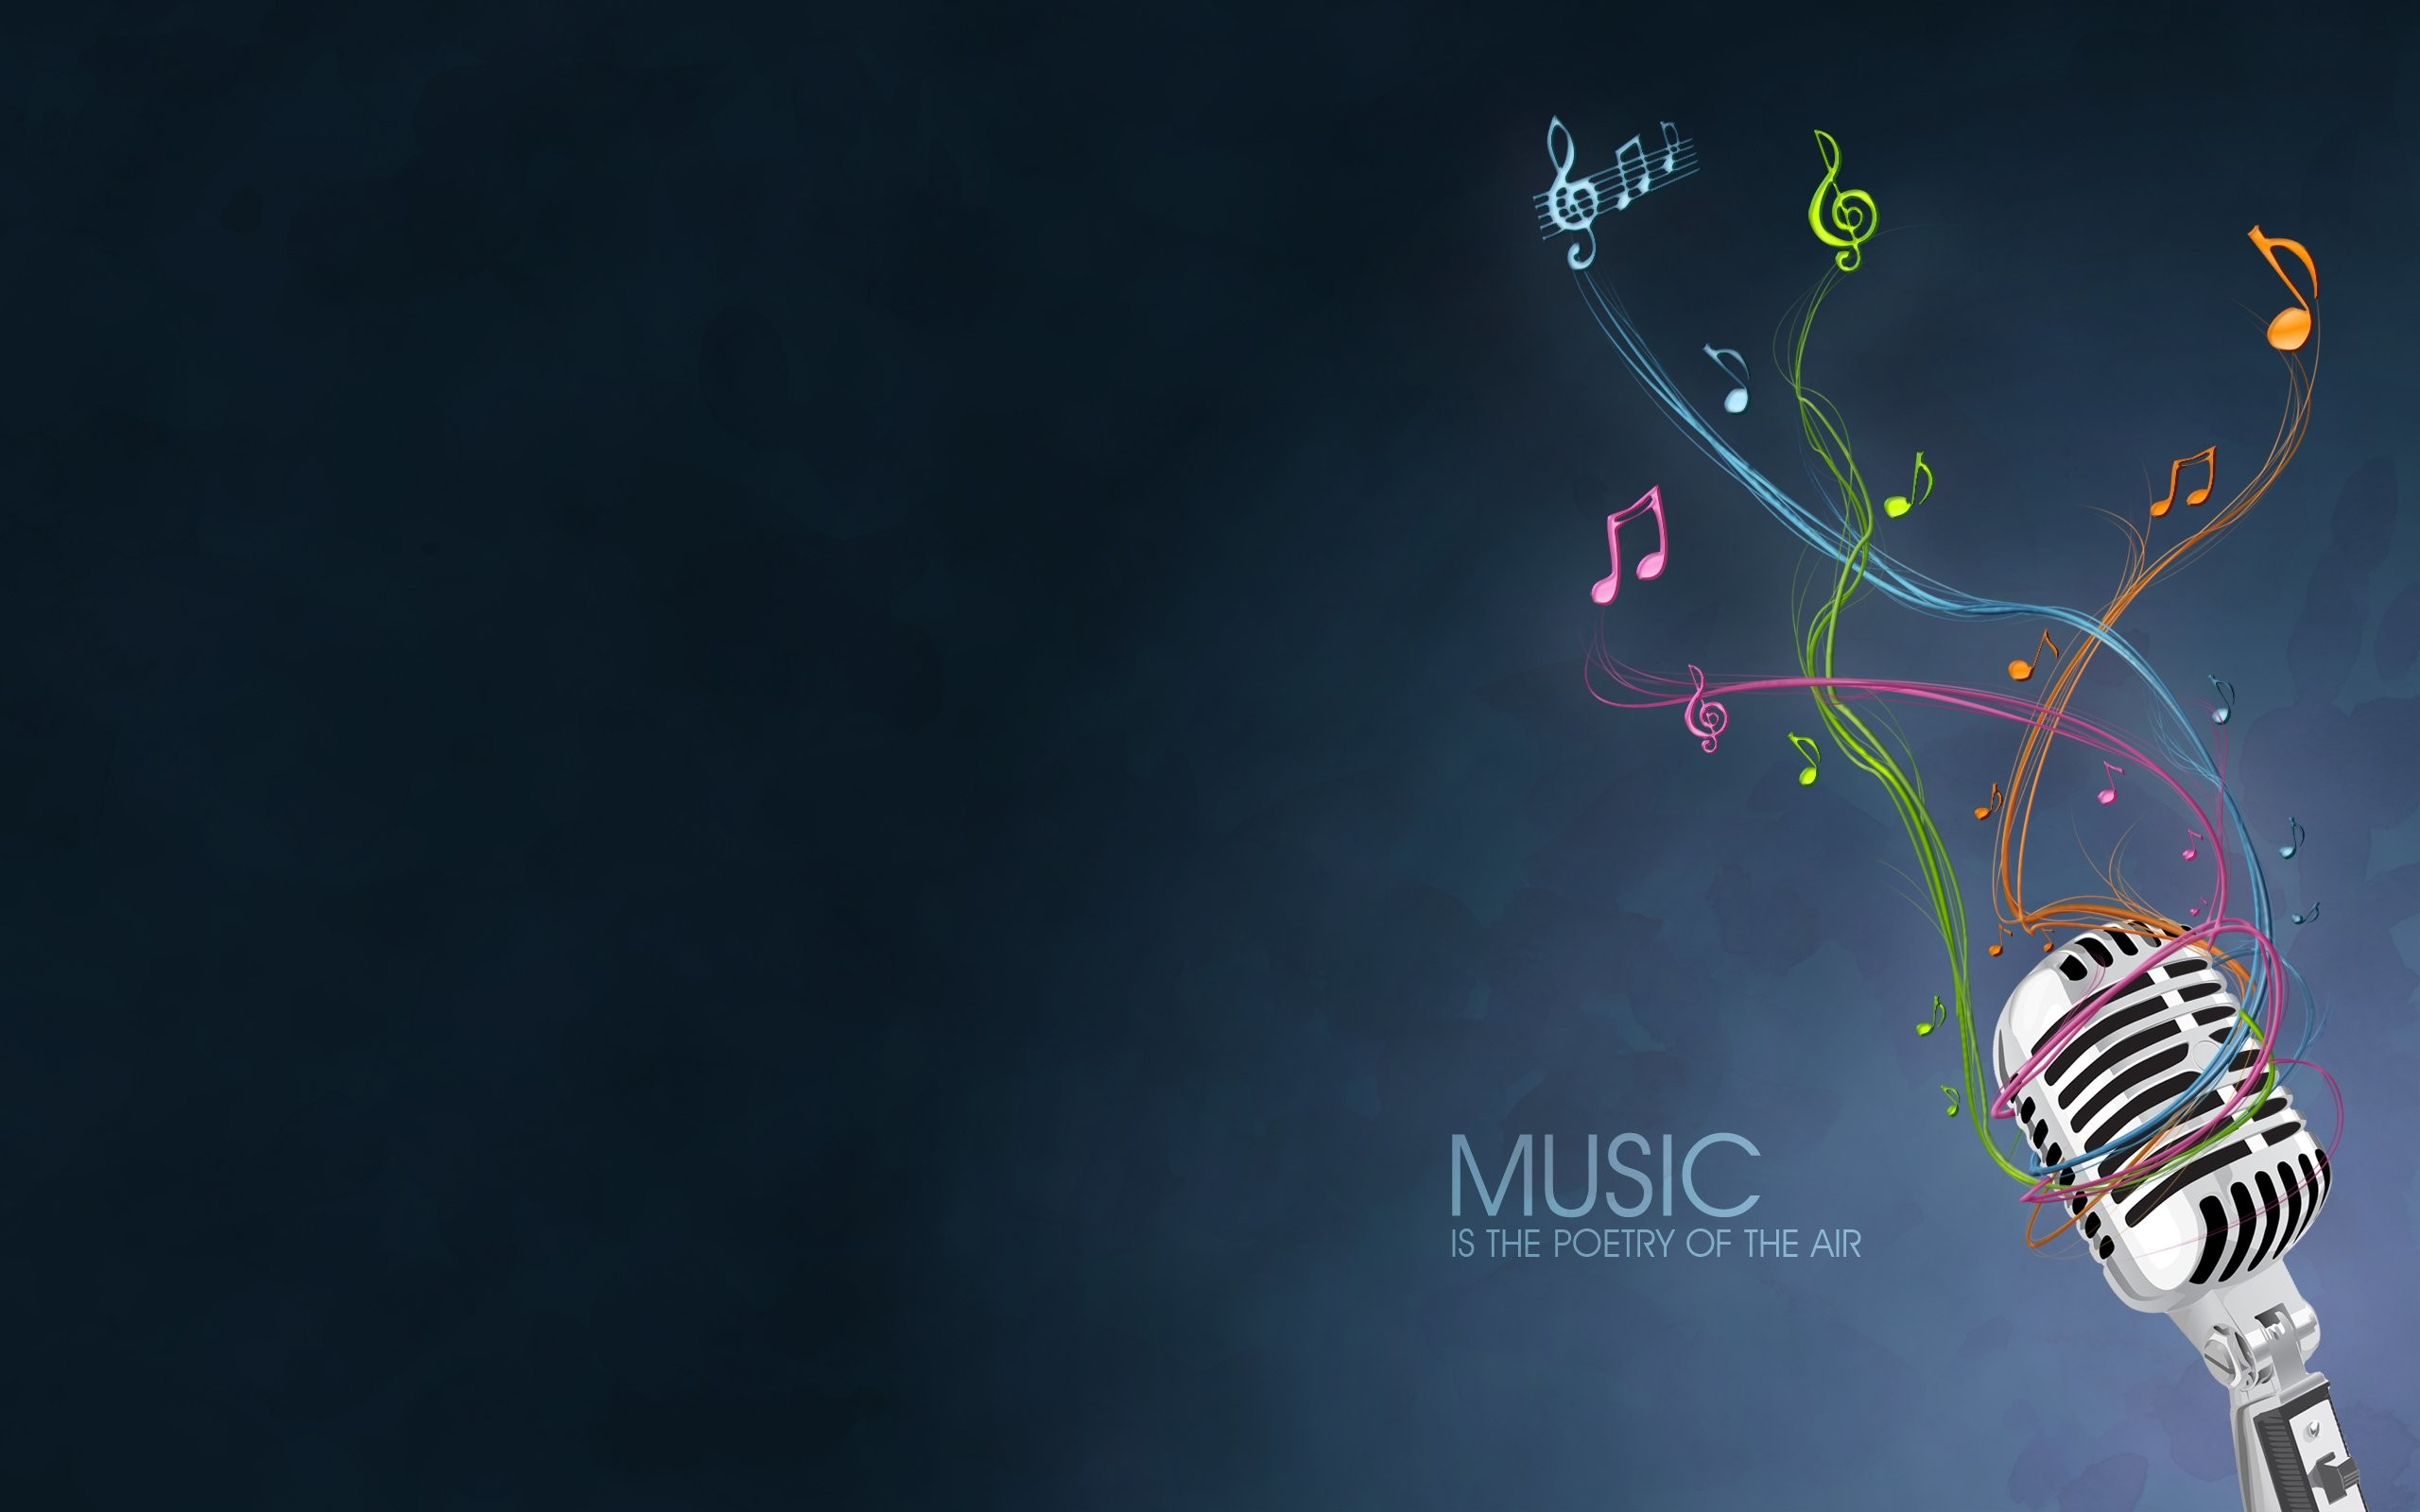 2560x1600 Music Wallpapers Desktop Background